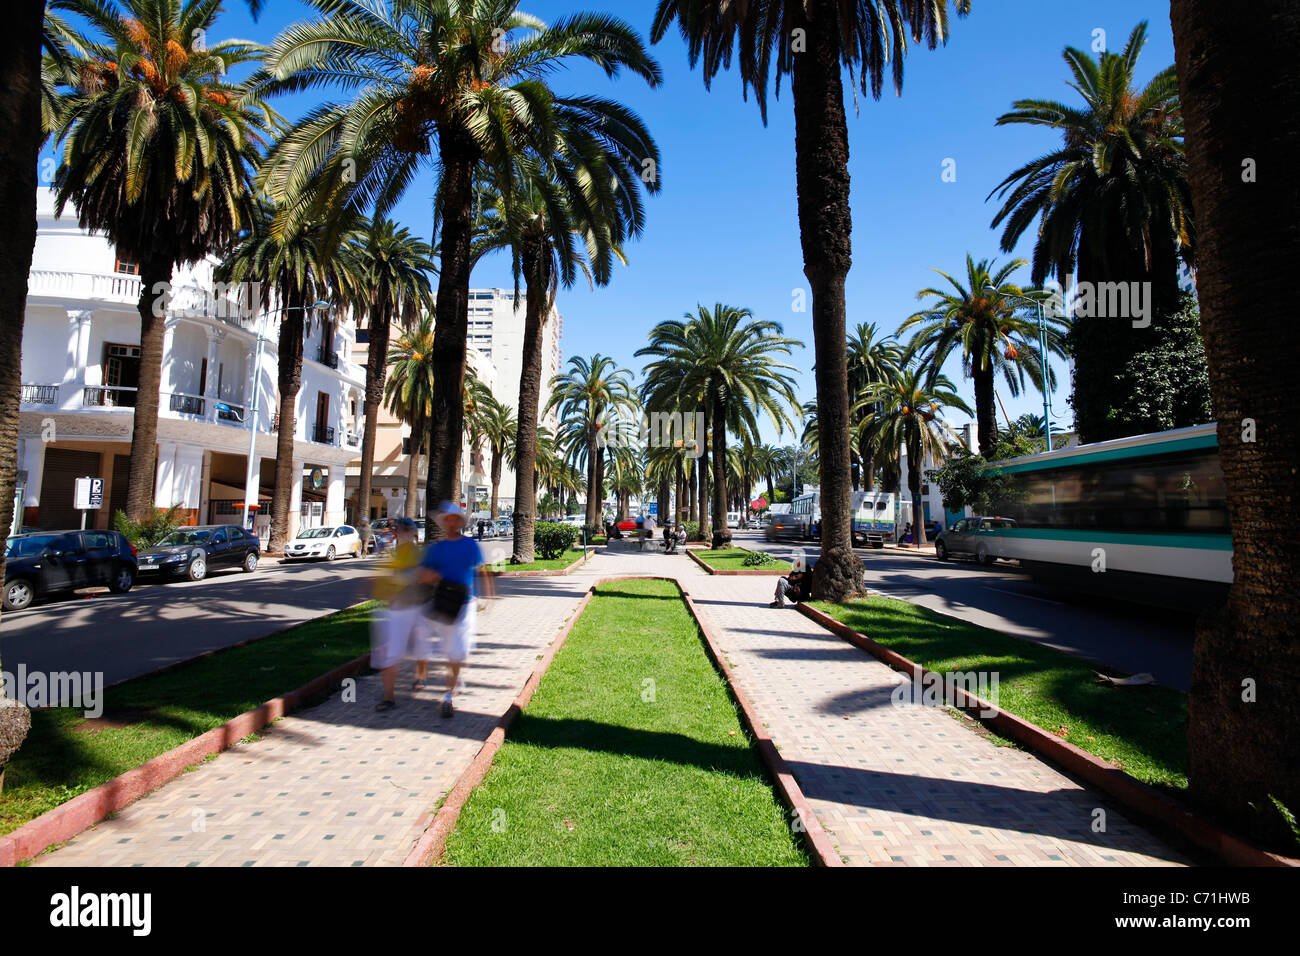 Morocco, Maghreb, Casablanca, The Boulevard de Rachidi is typical of the wide tree lined streets in the smart Lusitania - Stock Image